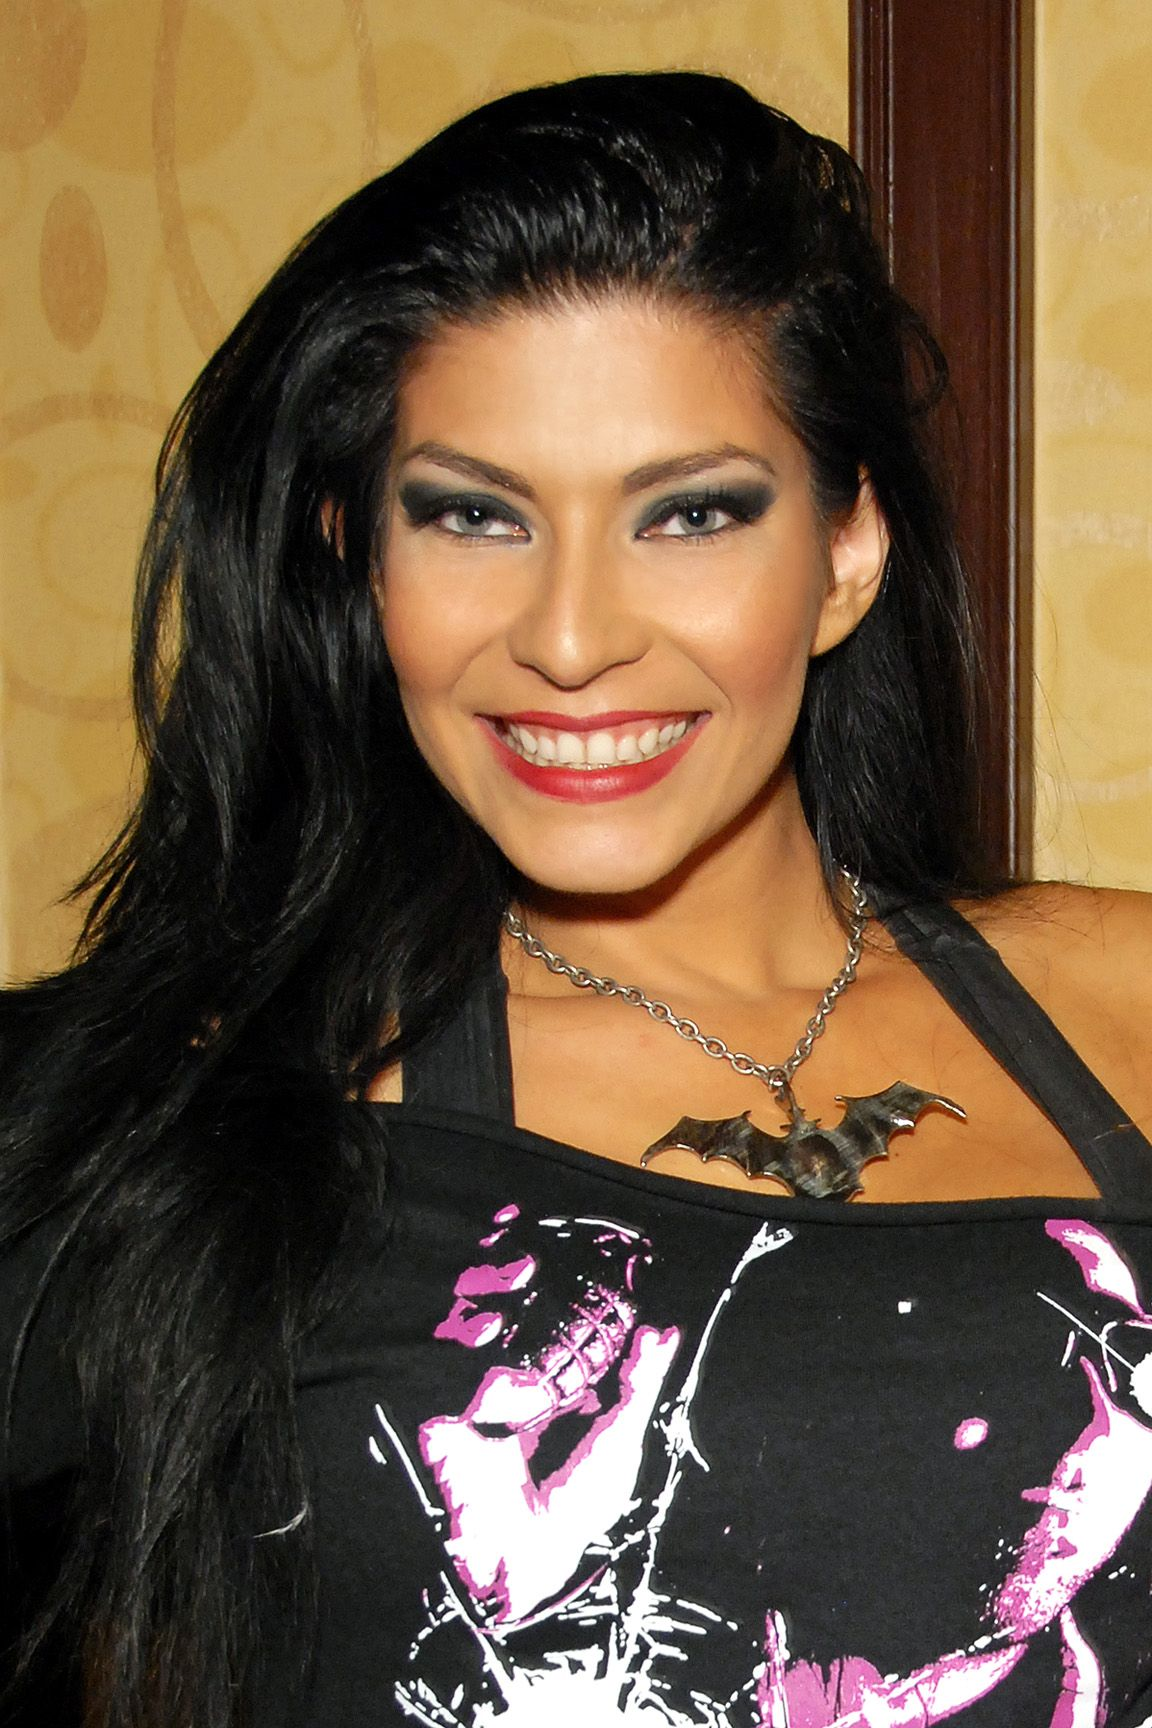 Cleavage Shelly Martinez nudes (77 images), Topless